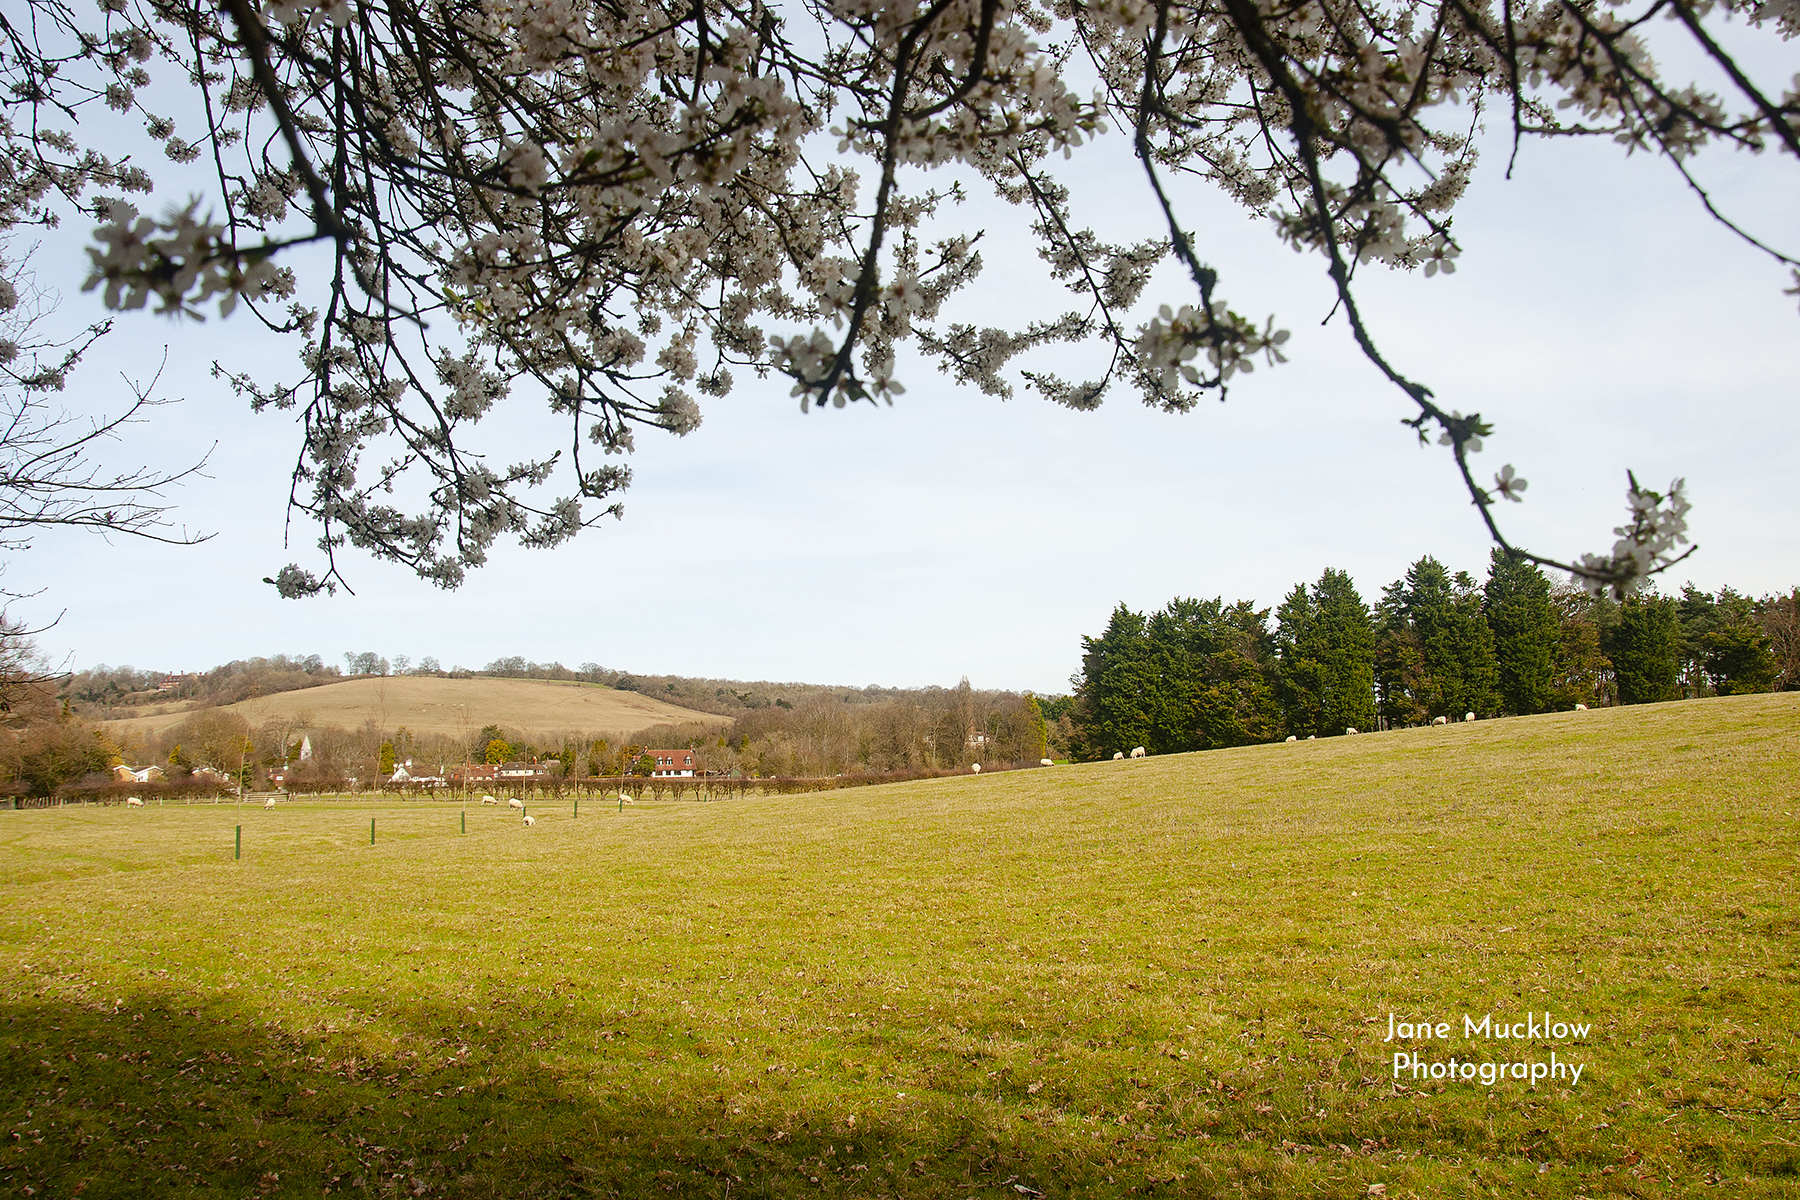 Photo by Jane Mucklow of spring blossom and sheep field view to Kemsing, Kent.